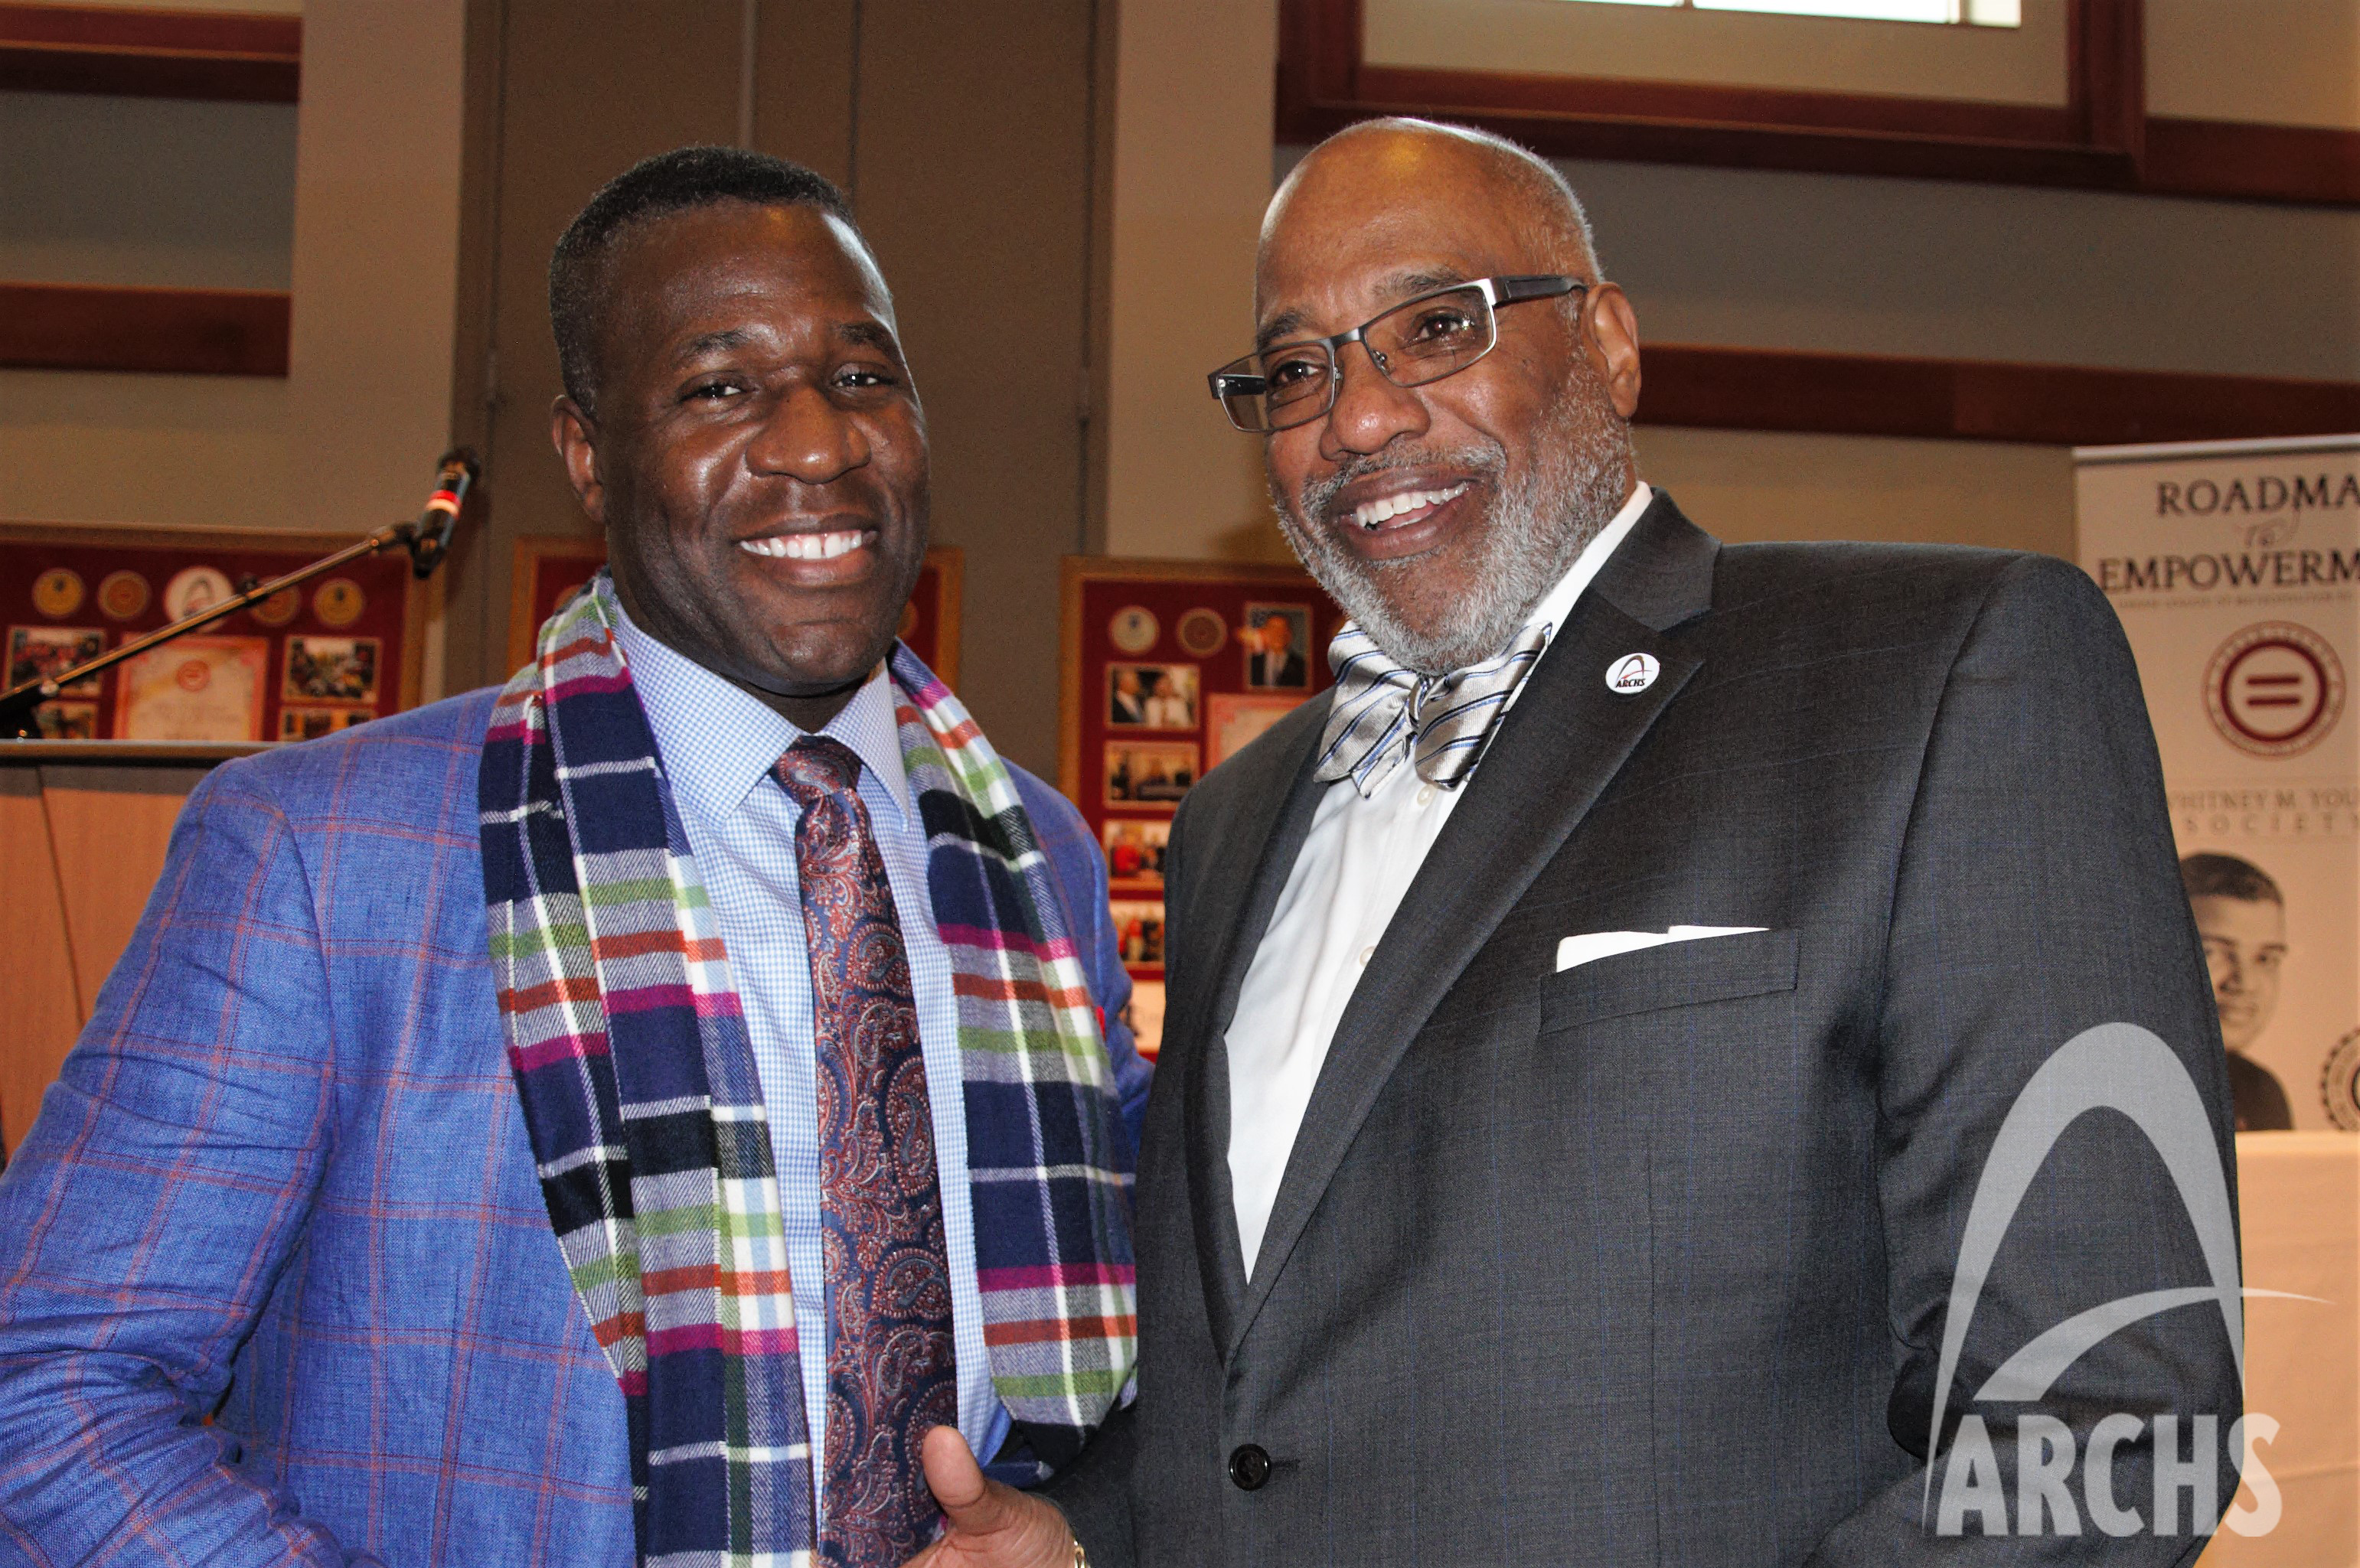 Wendell Kimbrough shaking hands with Dr. Art McCoy